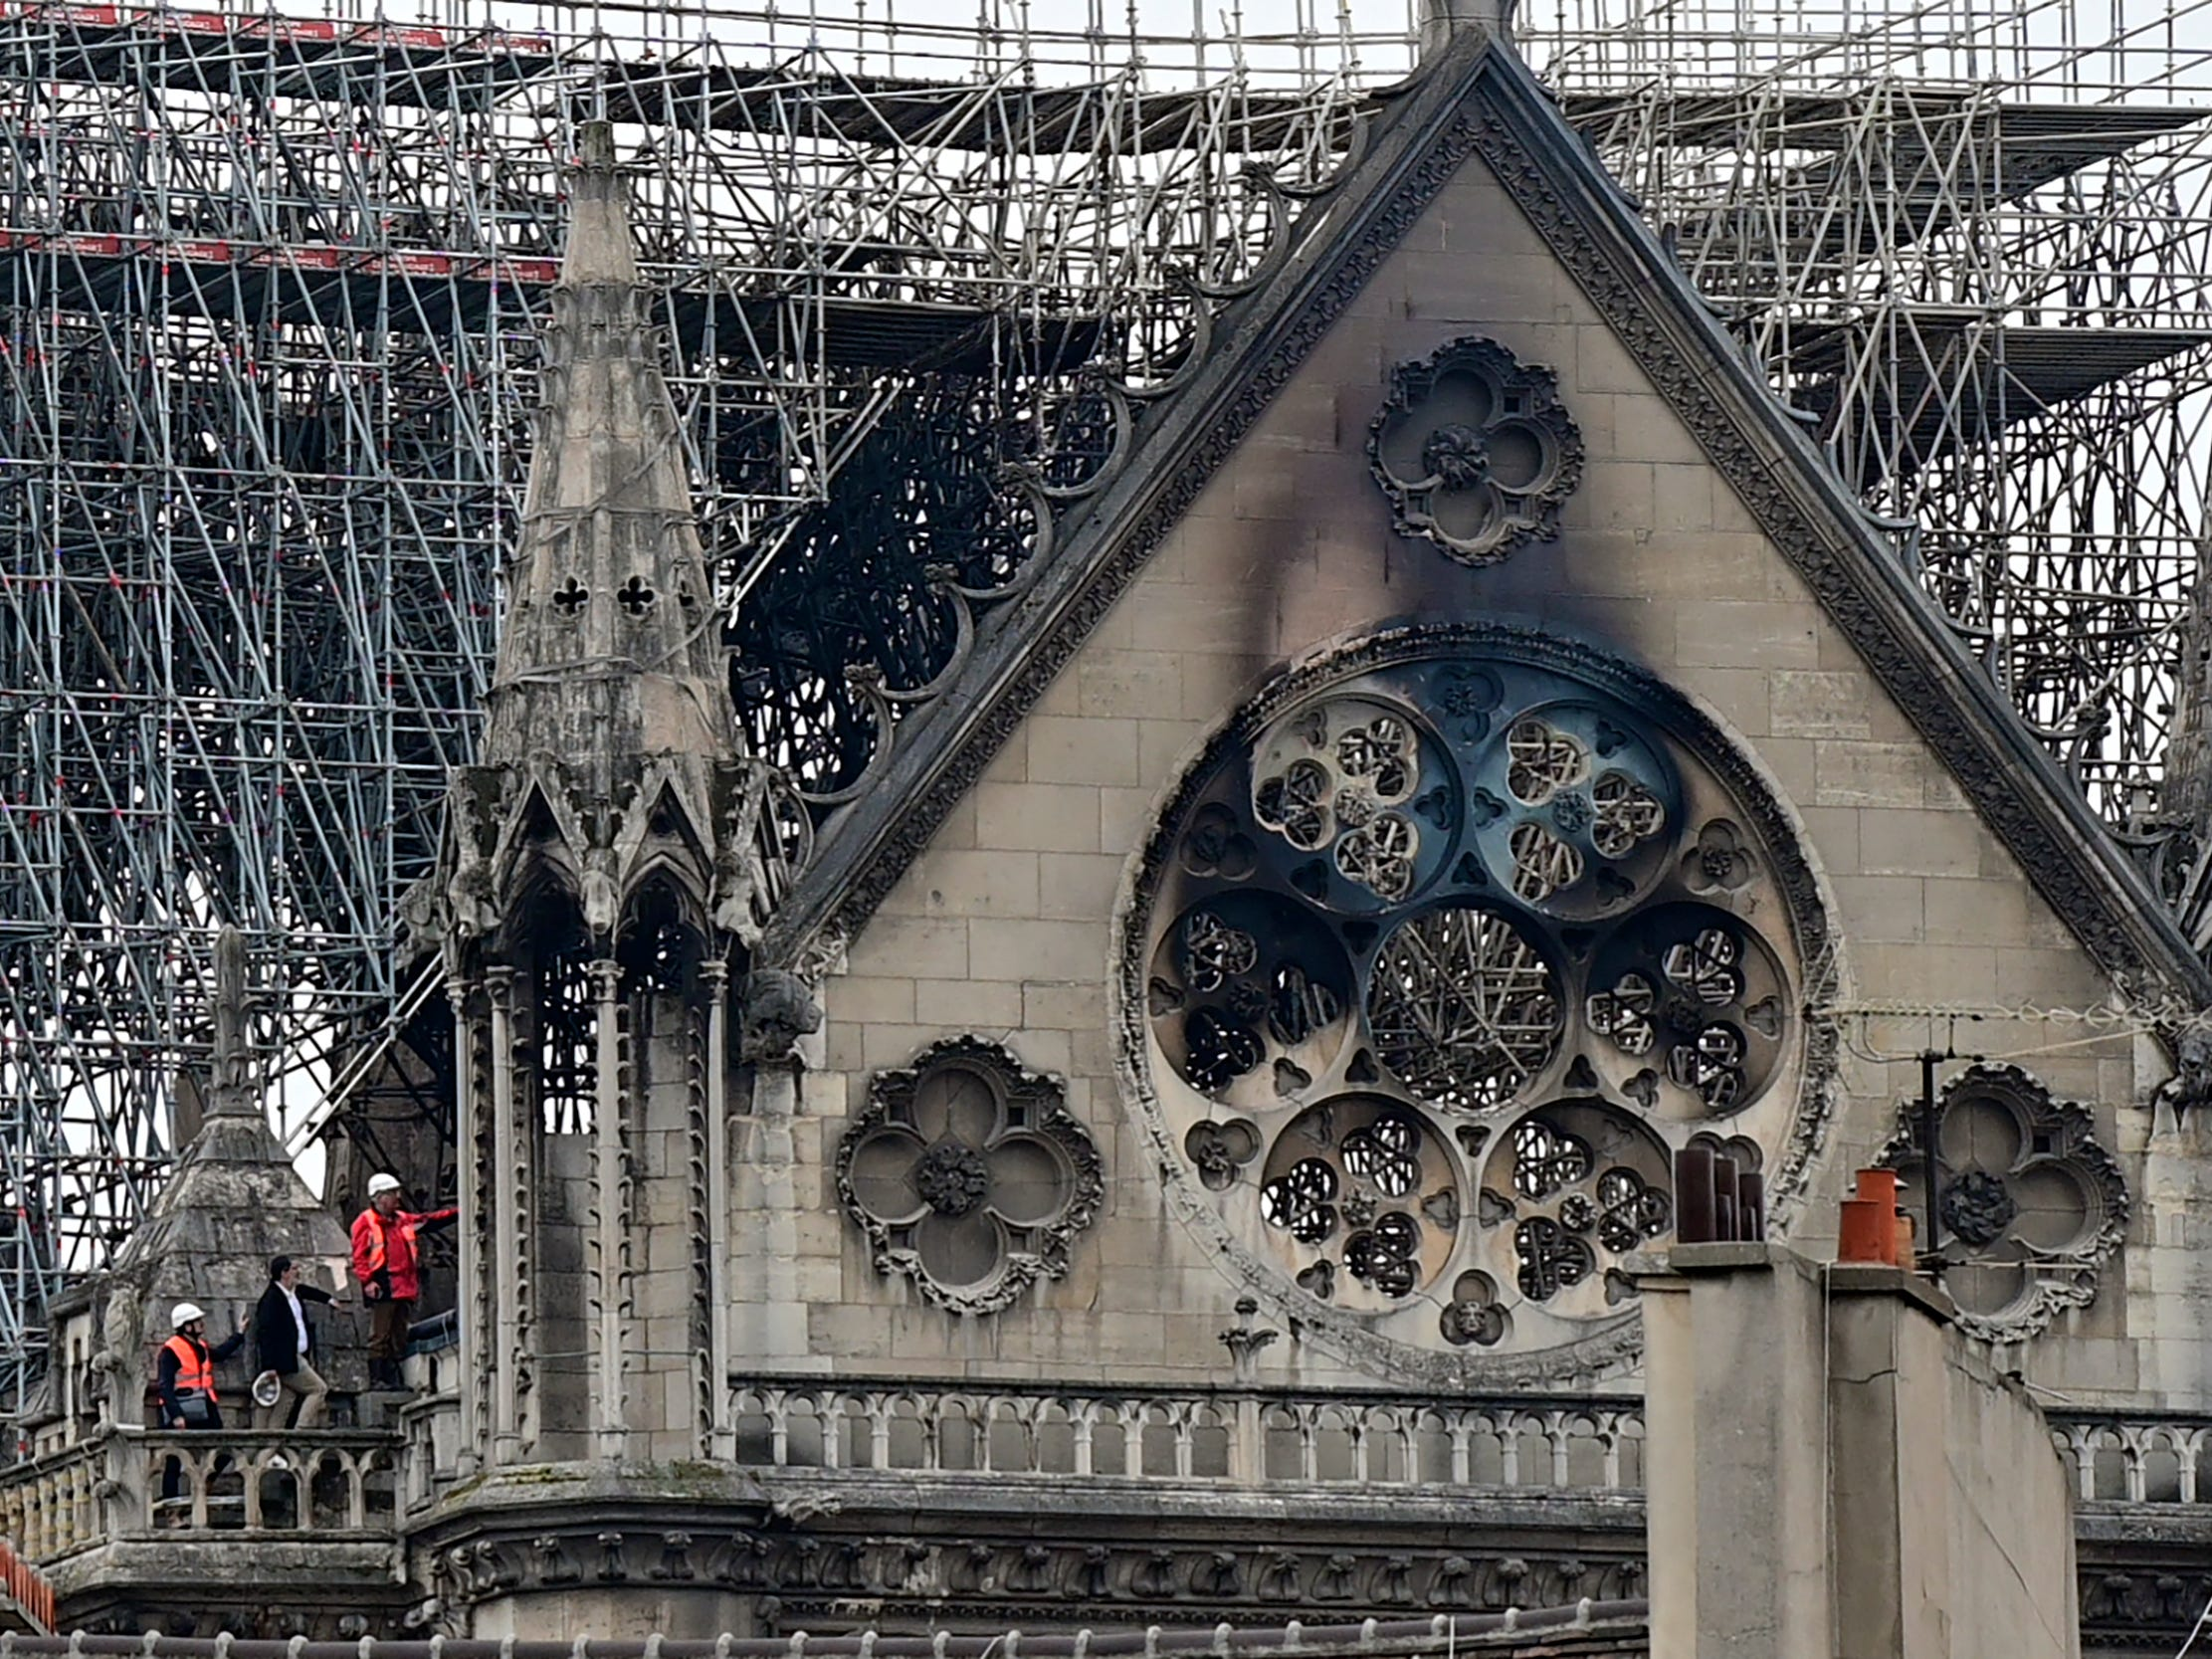 Inspectors are seen on the roof of the landmark Notre Dame Cathedral in central Paris on April 16, 2019.